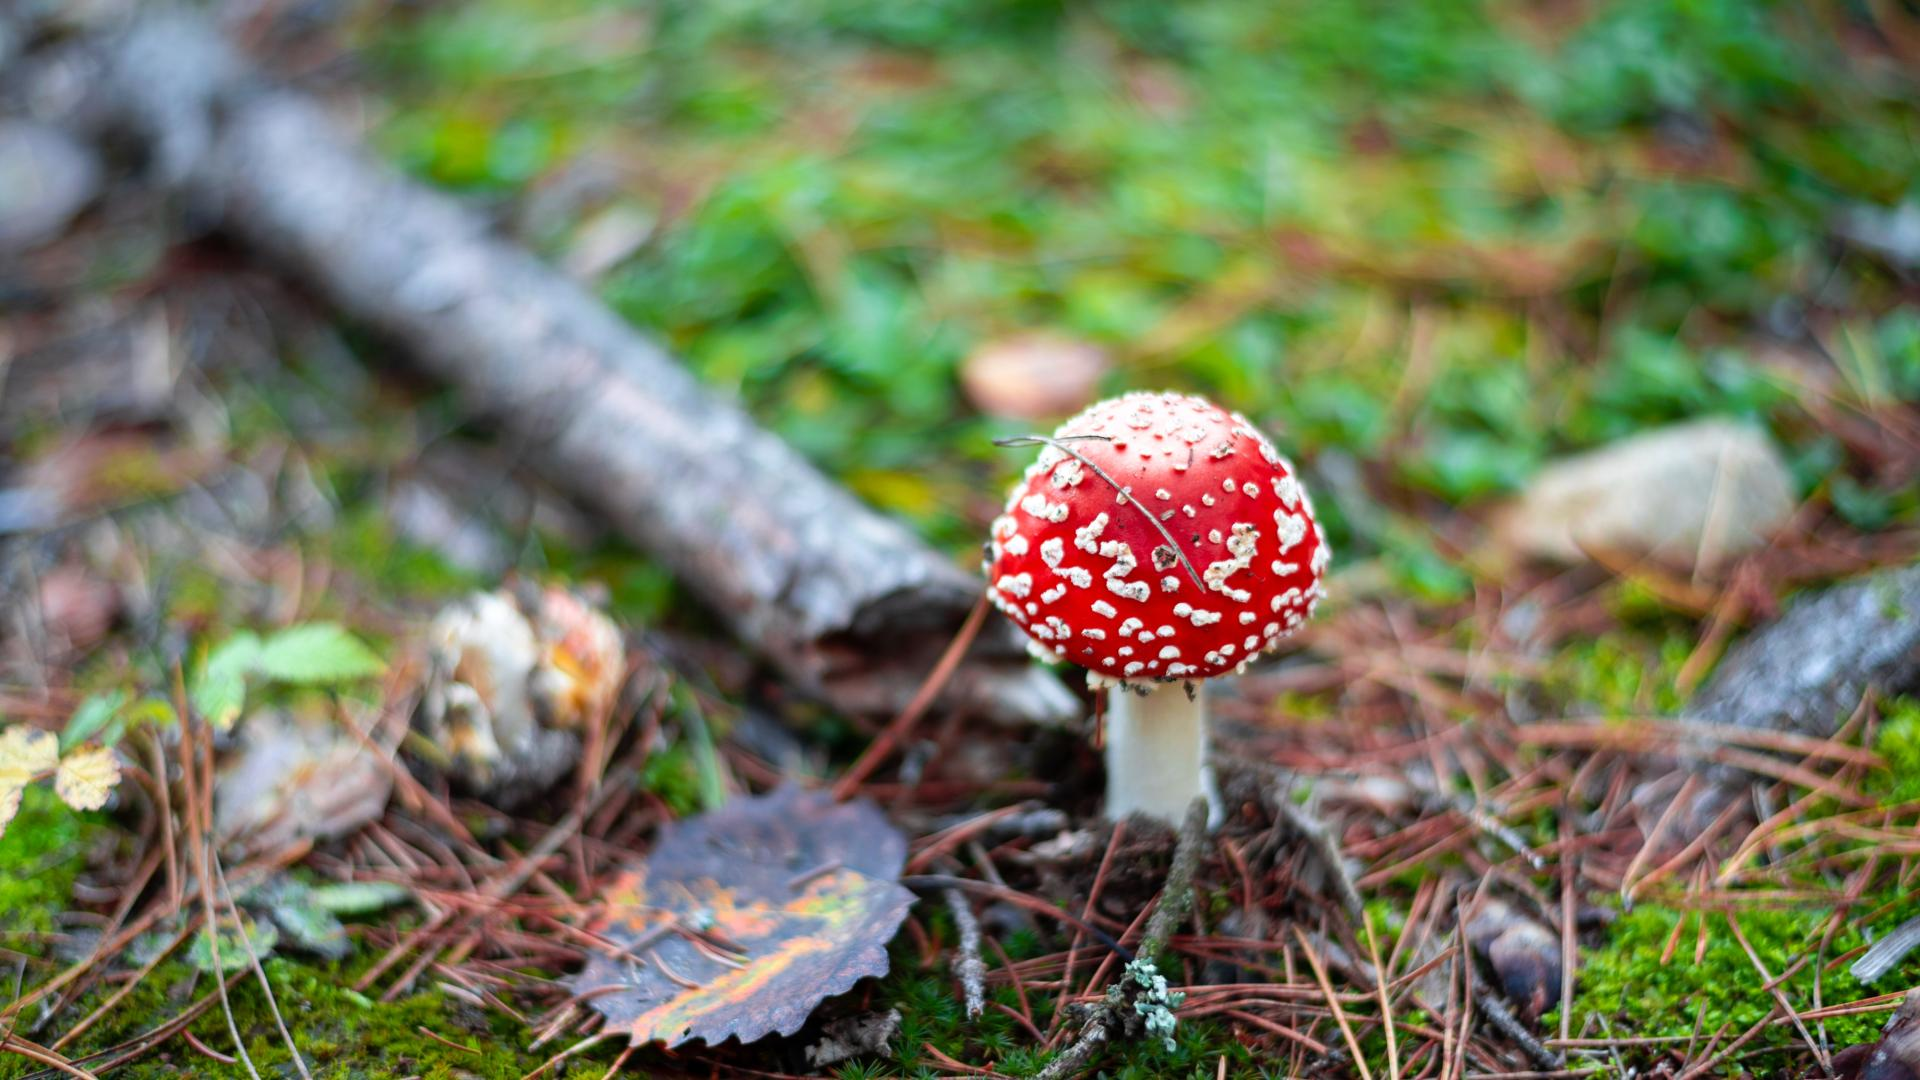 Wild mushroom growing in a forest